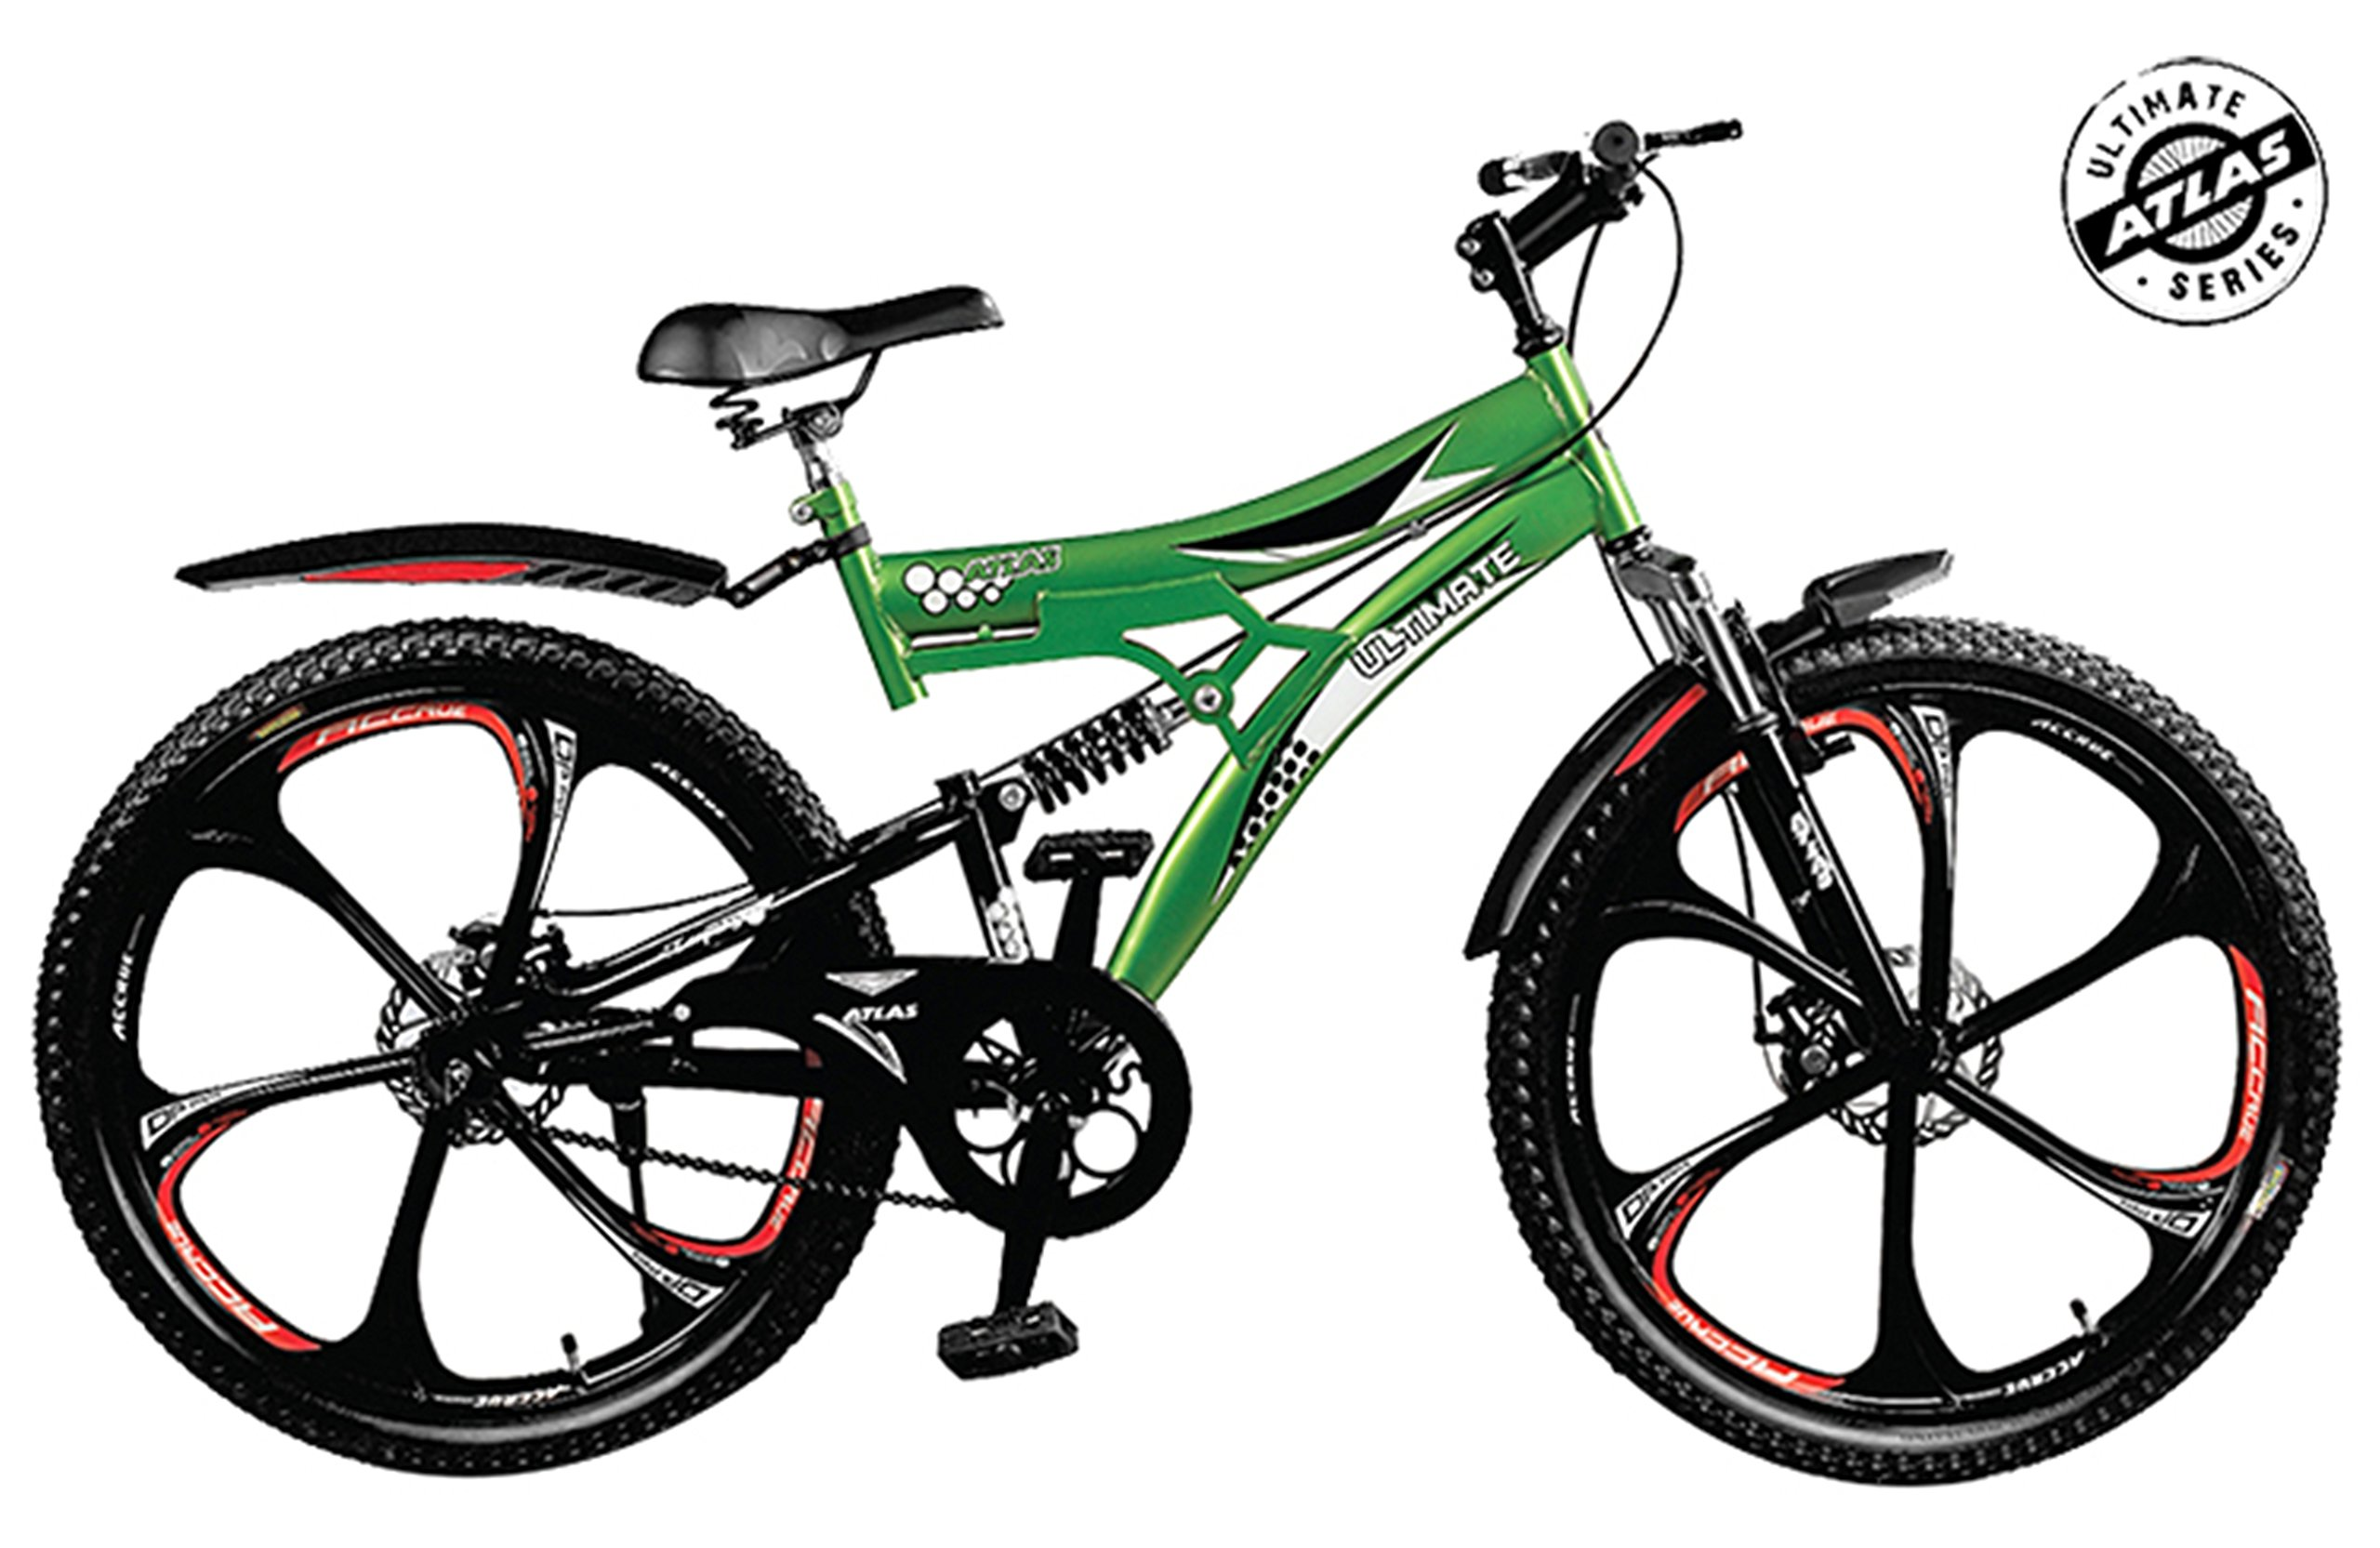 Atlas Torpedo D/Shox And Dual Disc Brake 26T Mountain Cycle (Green/Red) product image